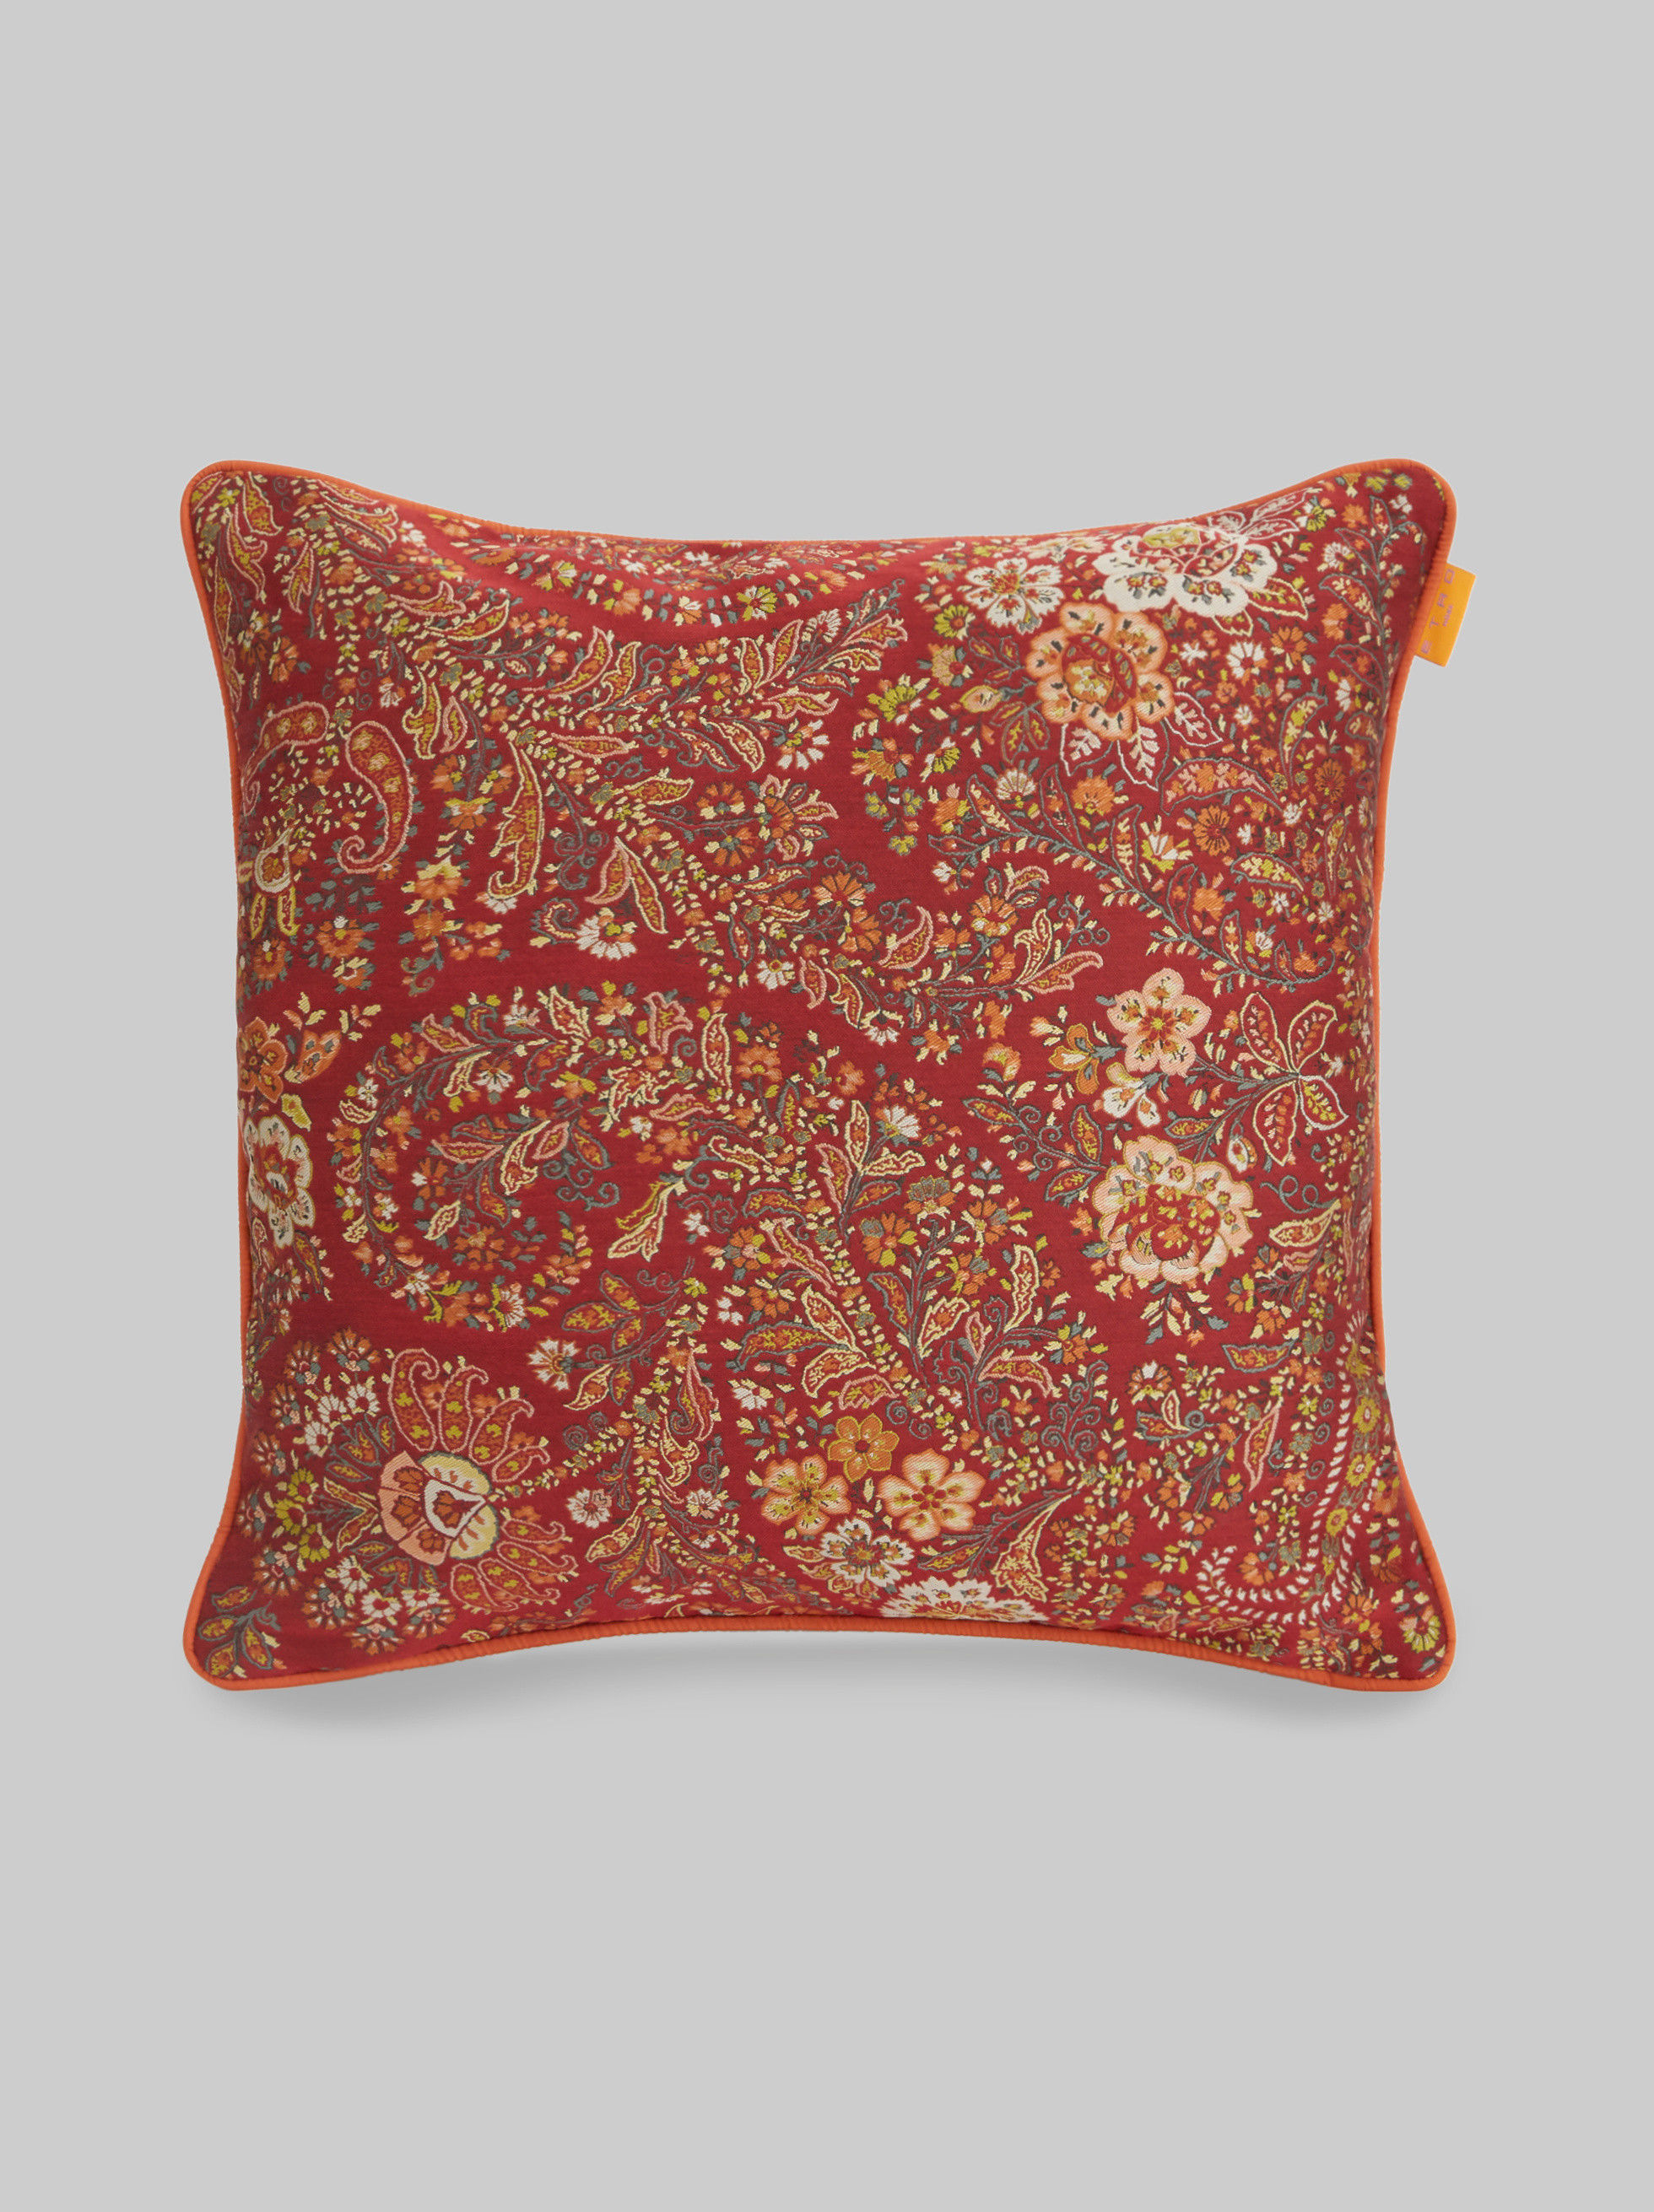 JACQUARD THROW PILLOW